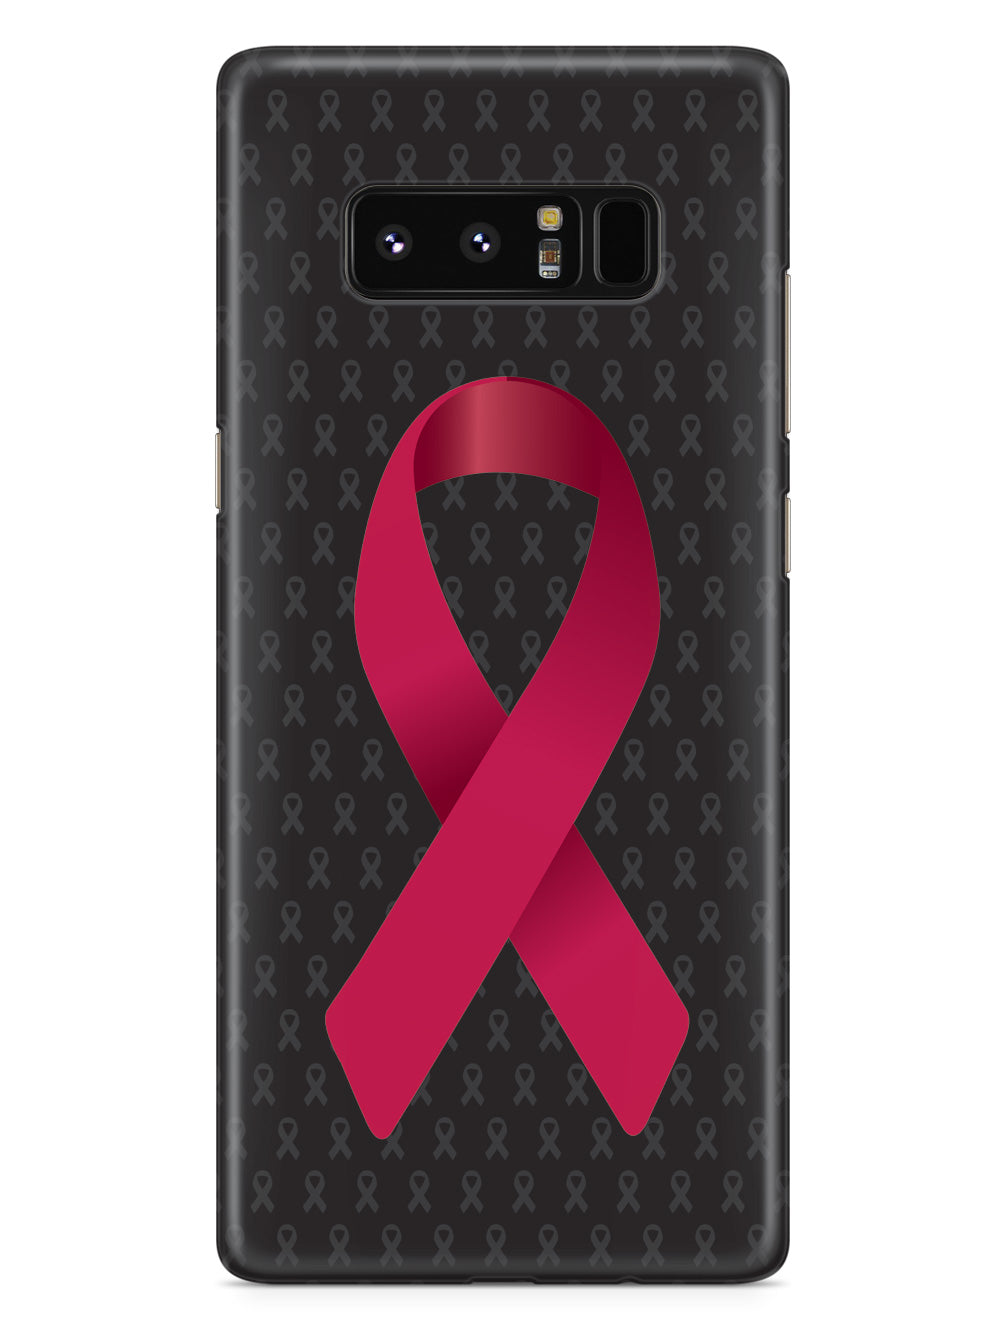 Burgundy Awareness Ribbon - Black Case